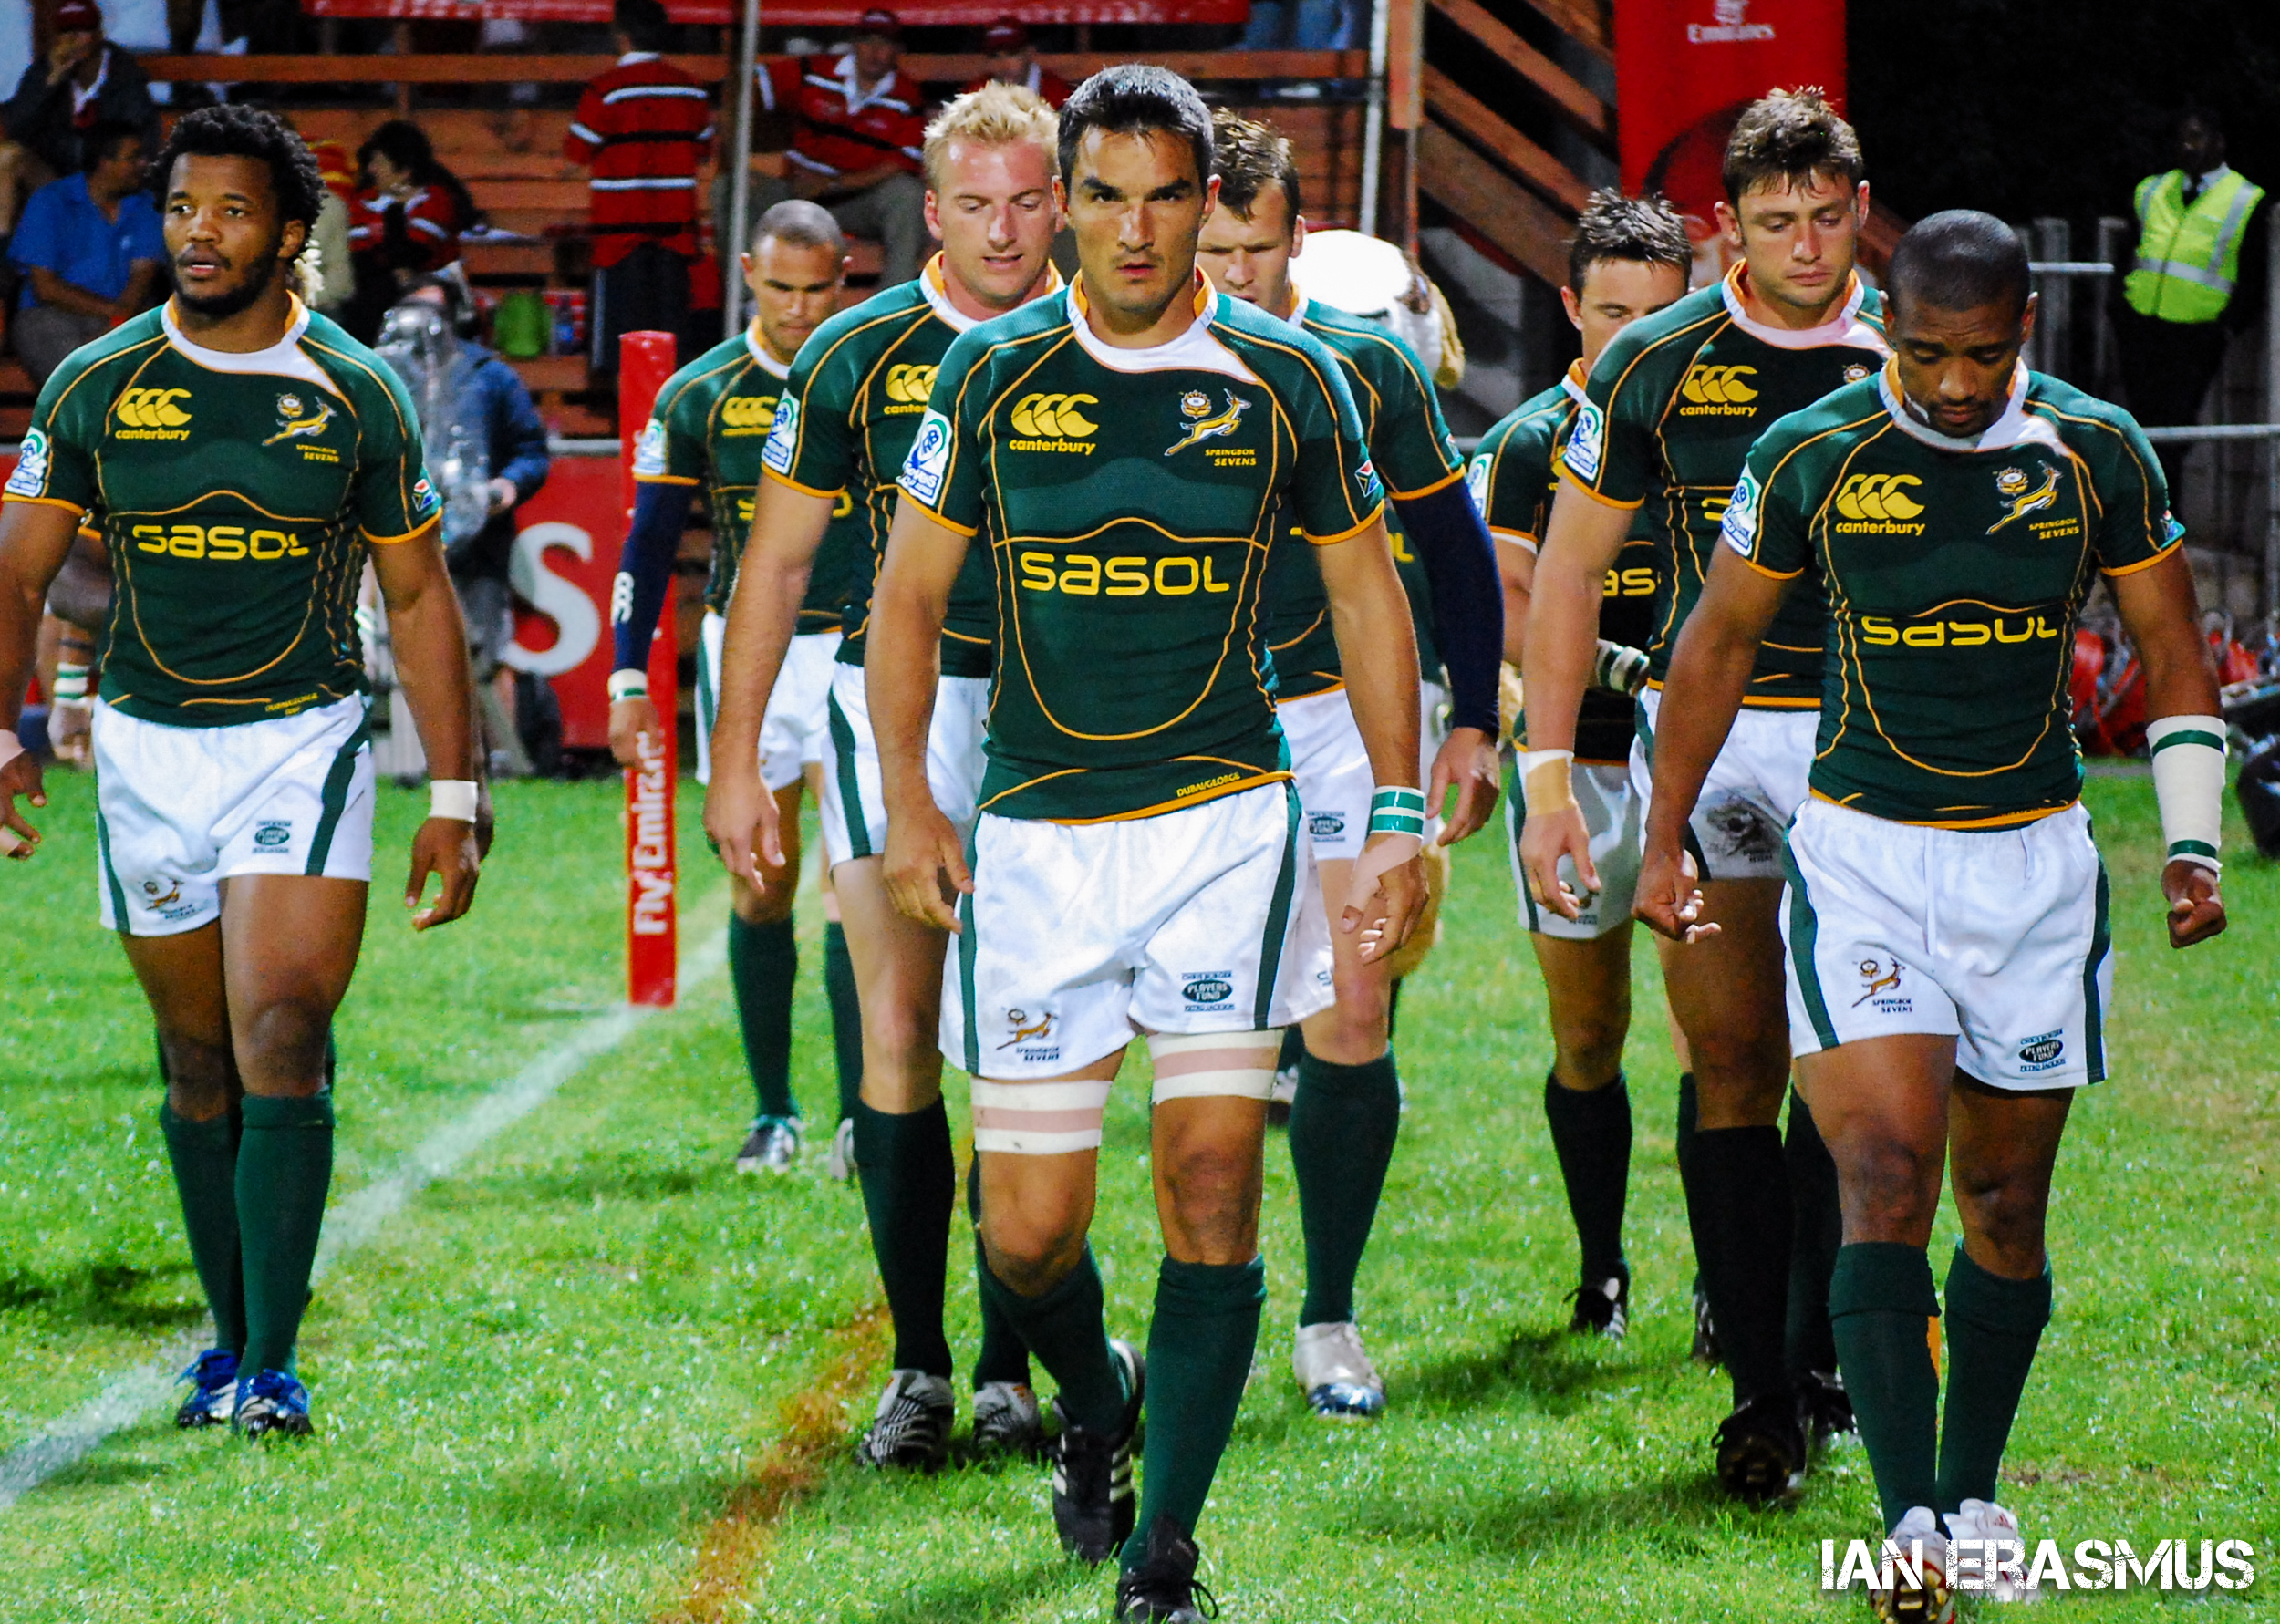 Captain Neil Powell leads the Springboks 7s team